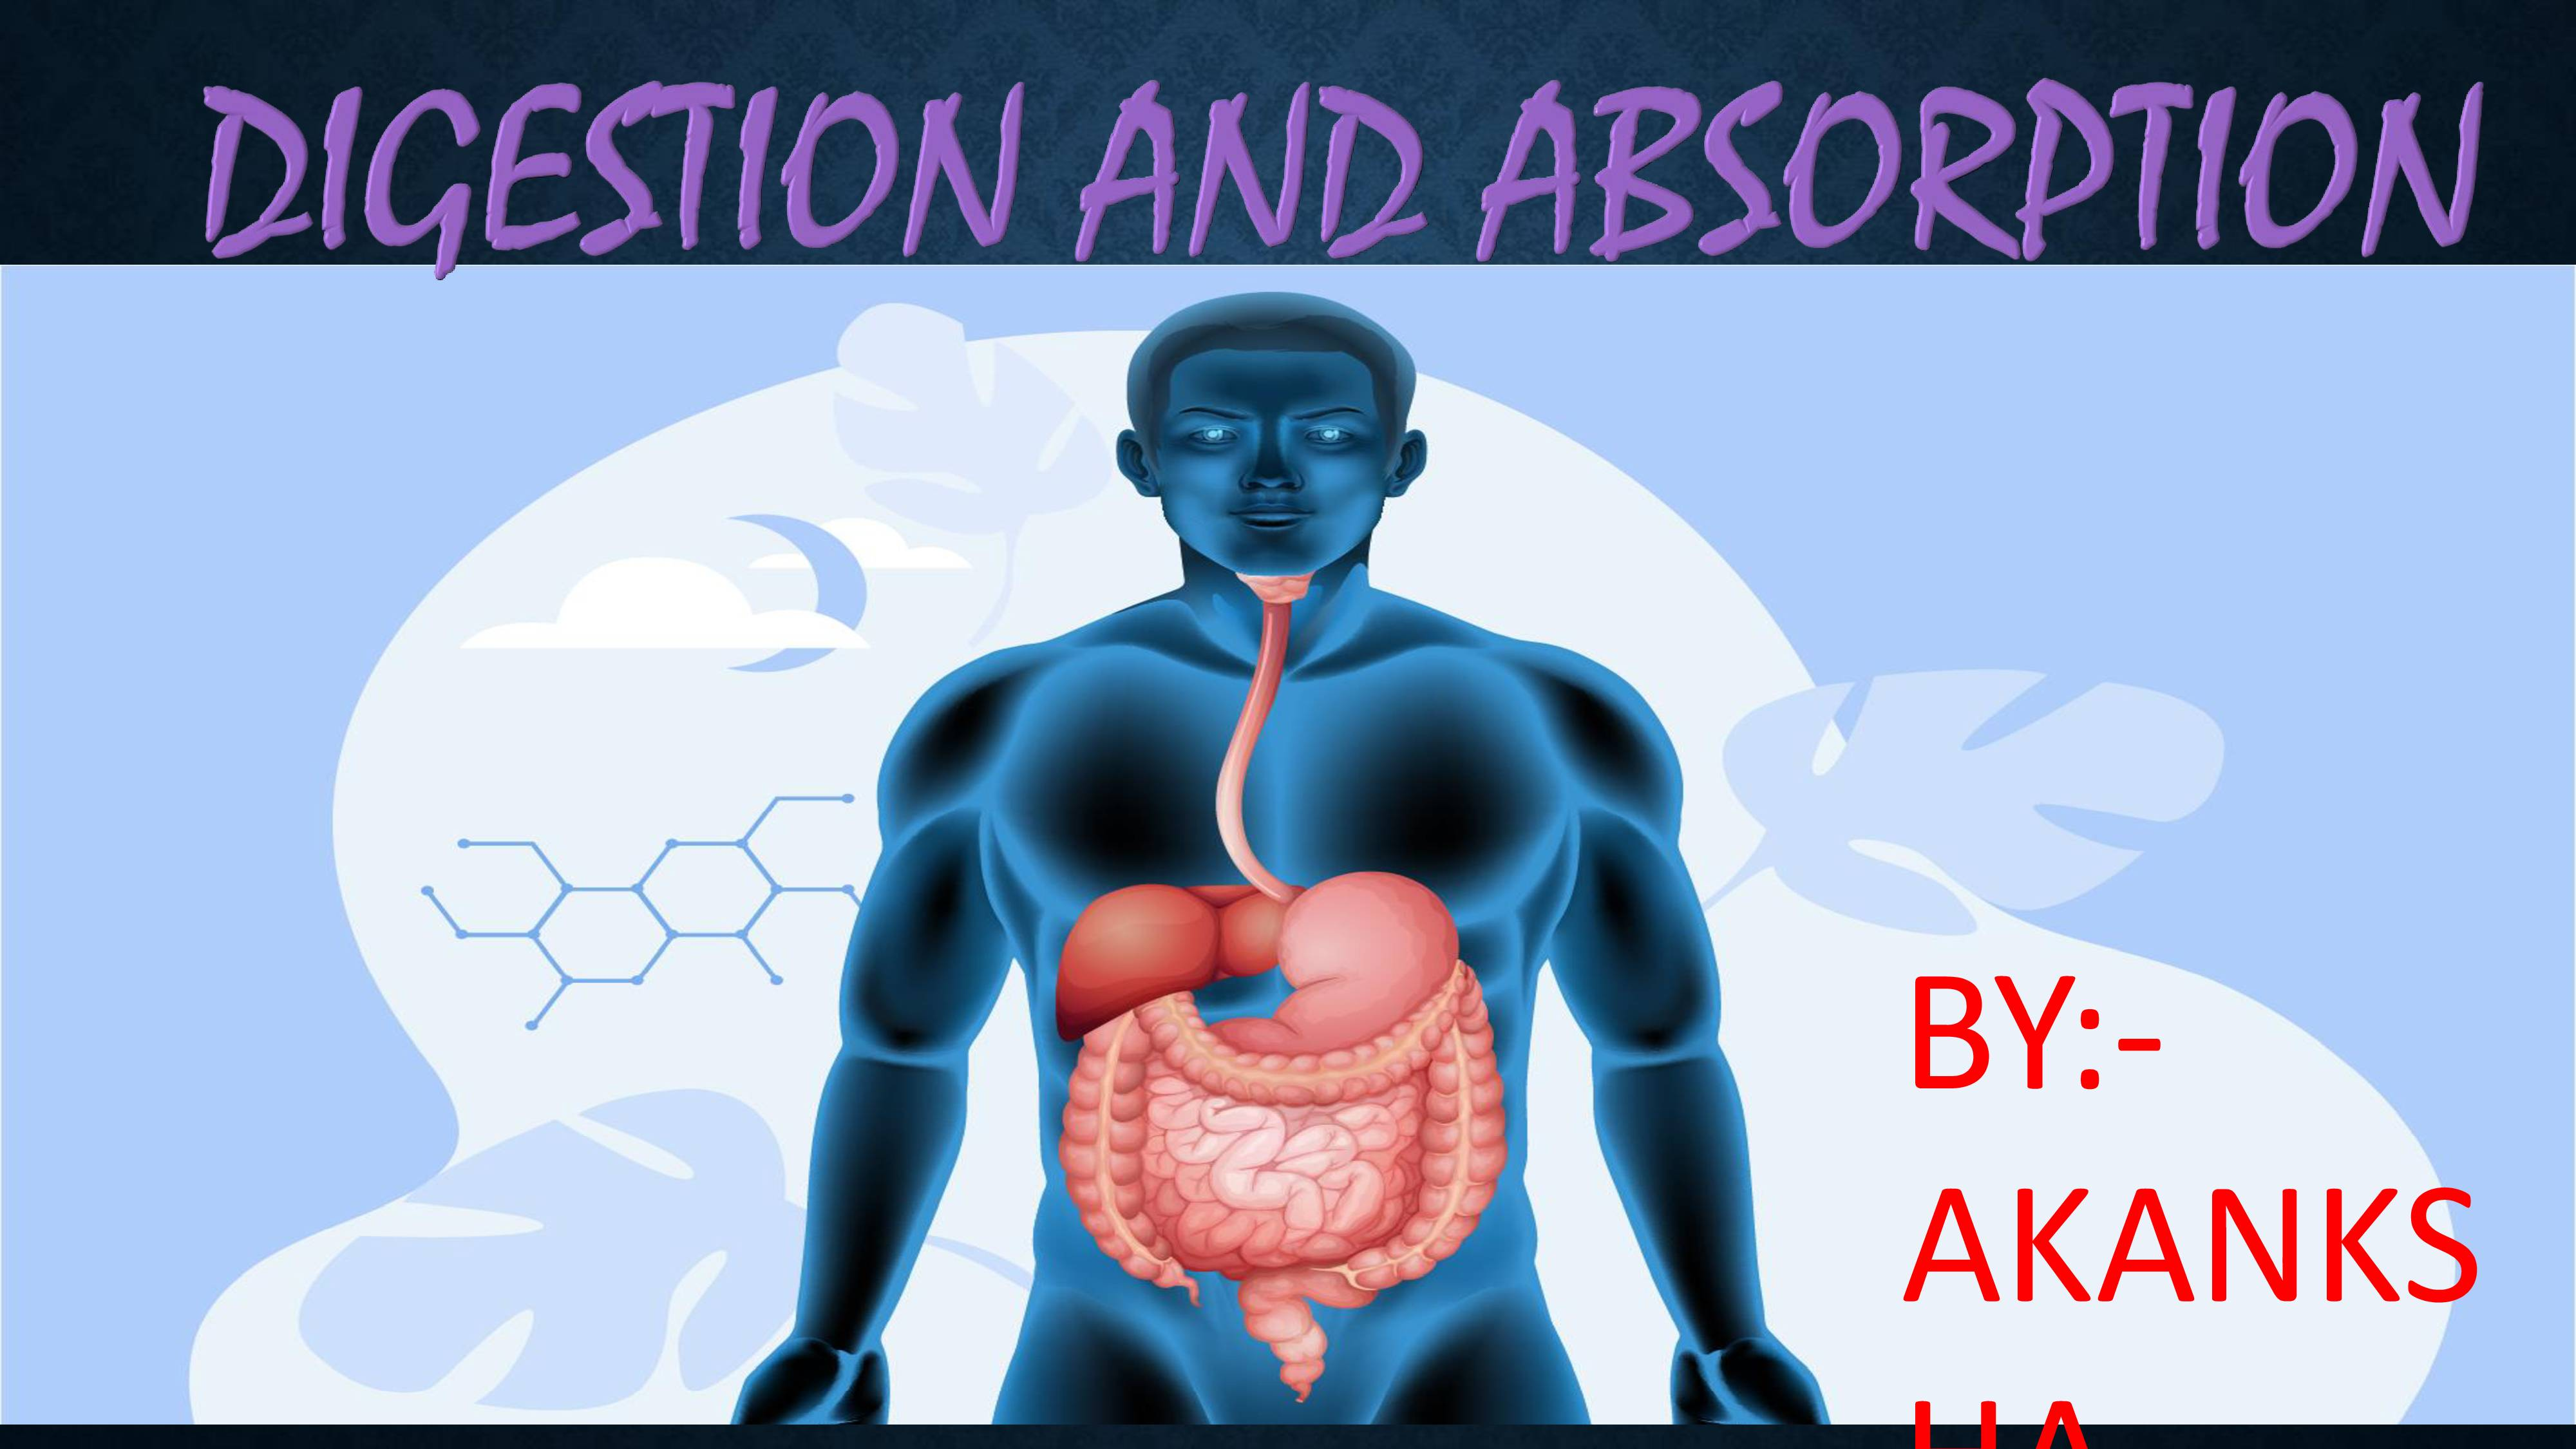 Digestion and absorption - 1